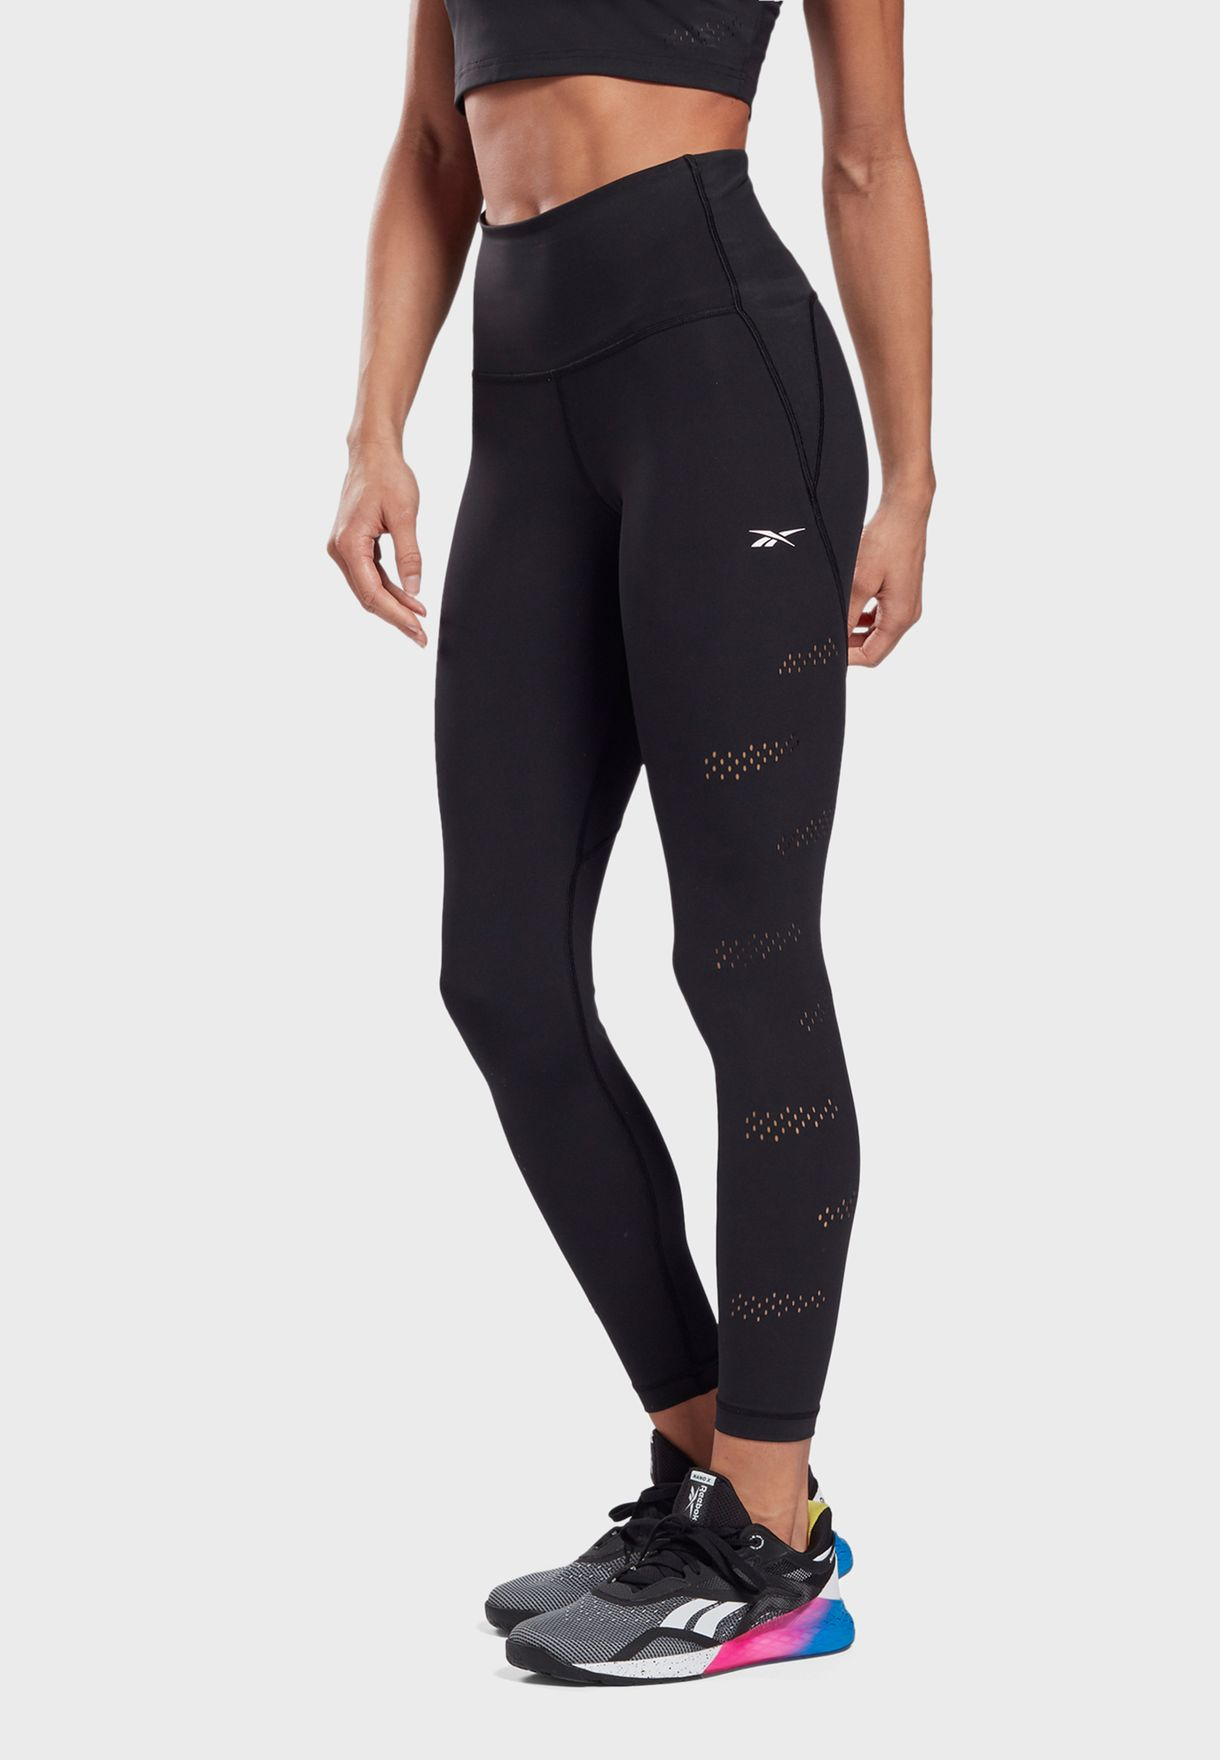 Lux Peformance Perforated Tights